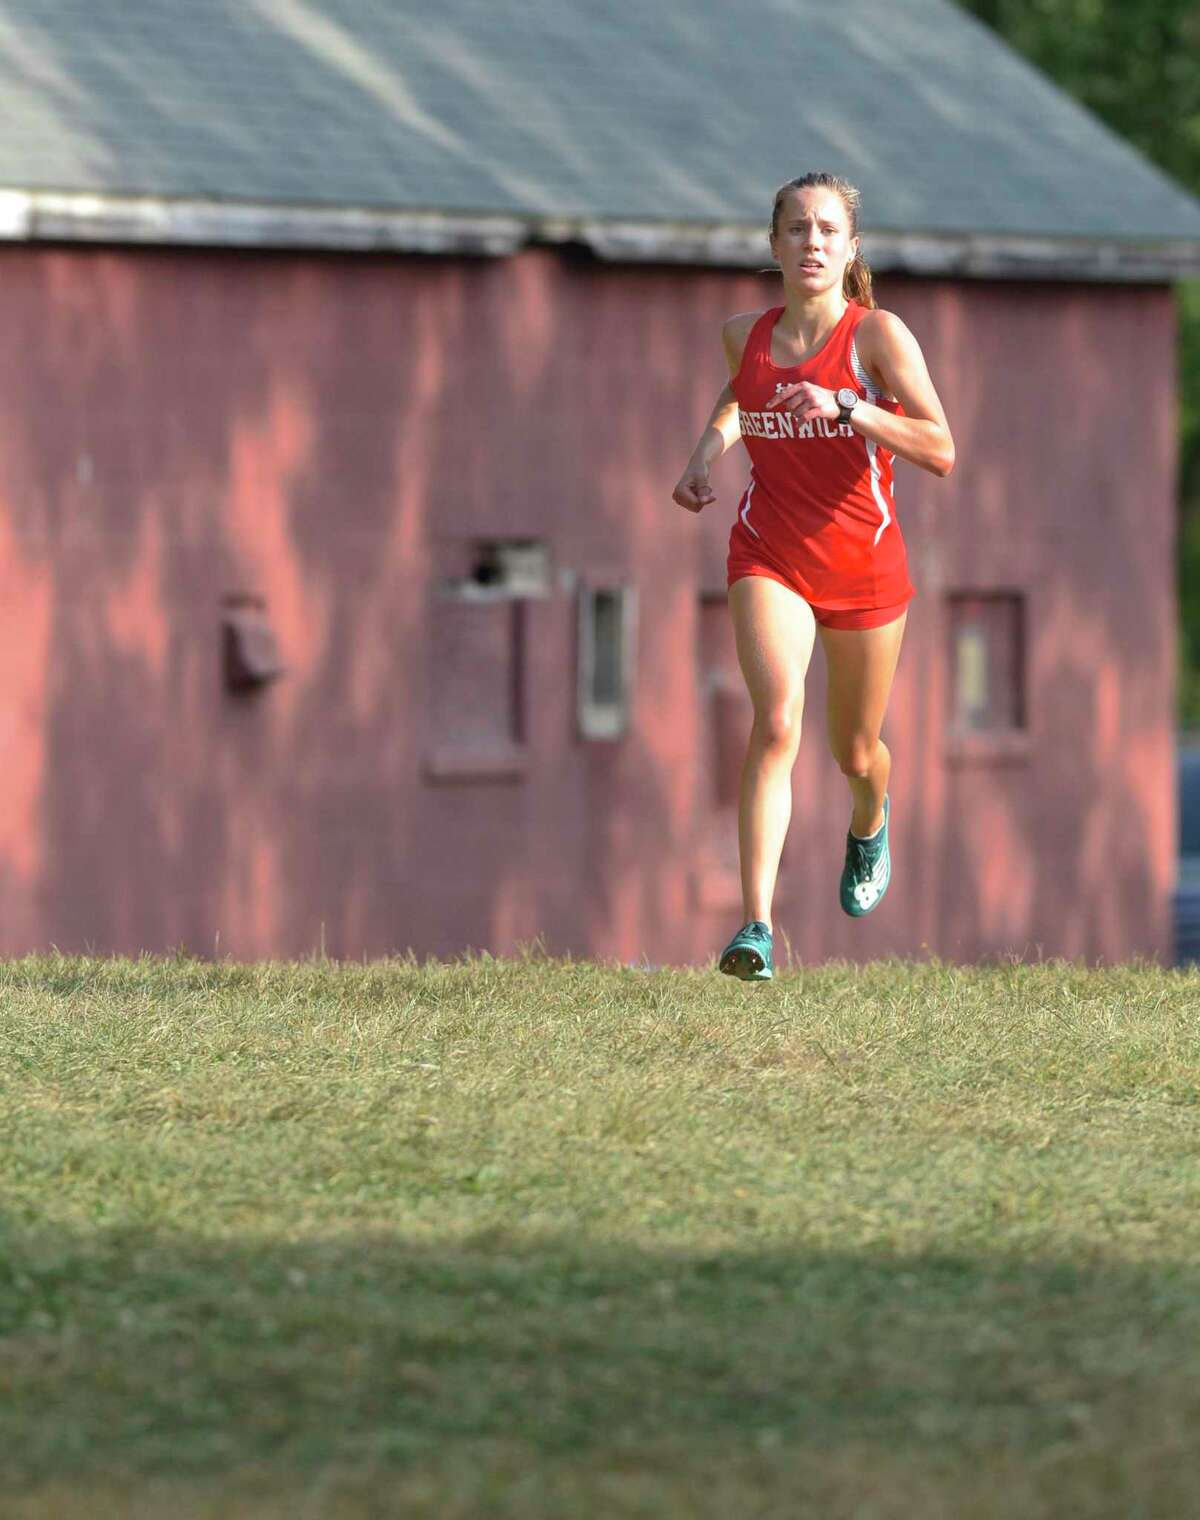 Mari Noble, from Greenwich HS, finished first in the girls Cross Country meet between Fairfield Ludlowe, Greenwich, Norwalk and Danbury high schools, Wednesday, September 11, 2019, at Tarrywile Park, Danbury, Conn.